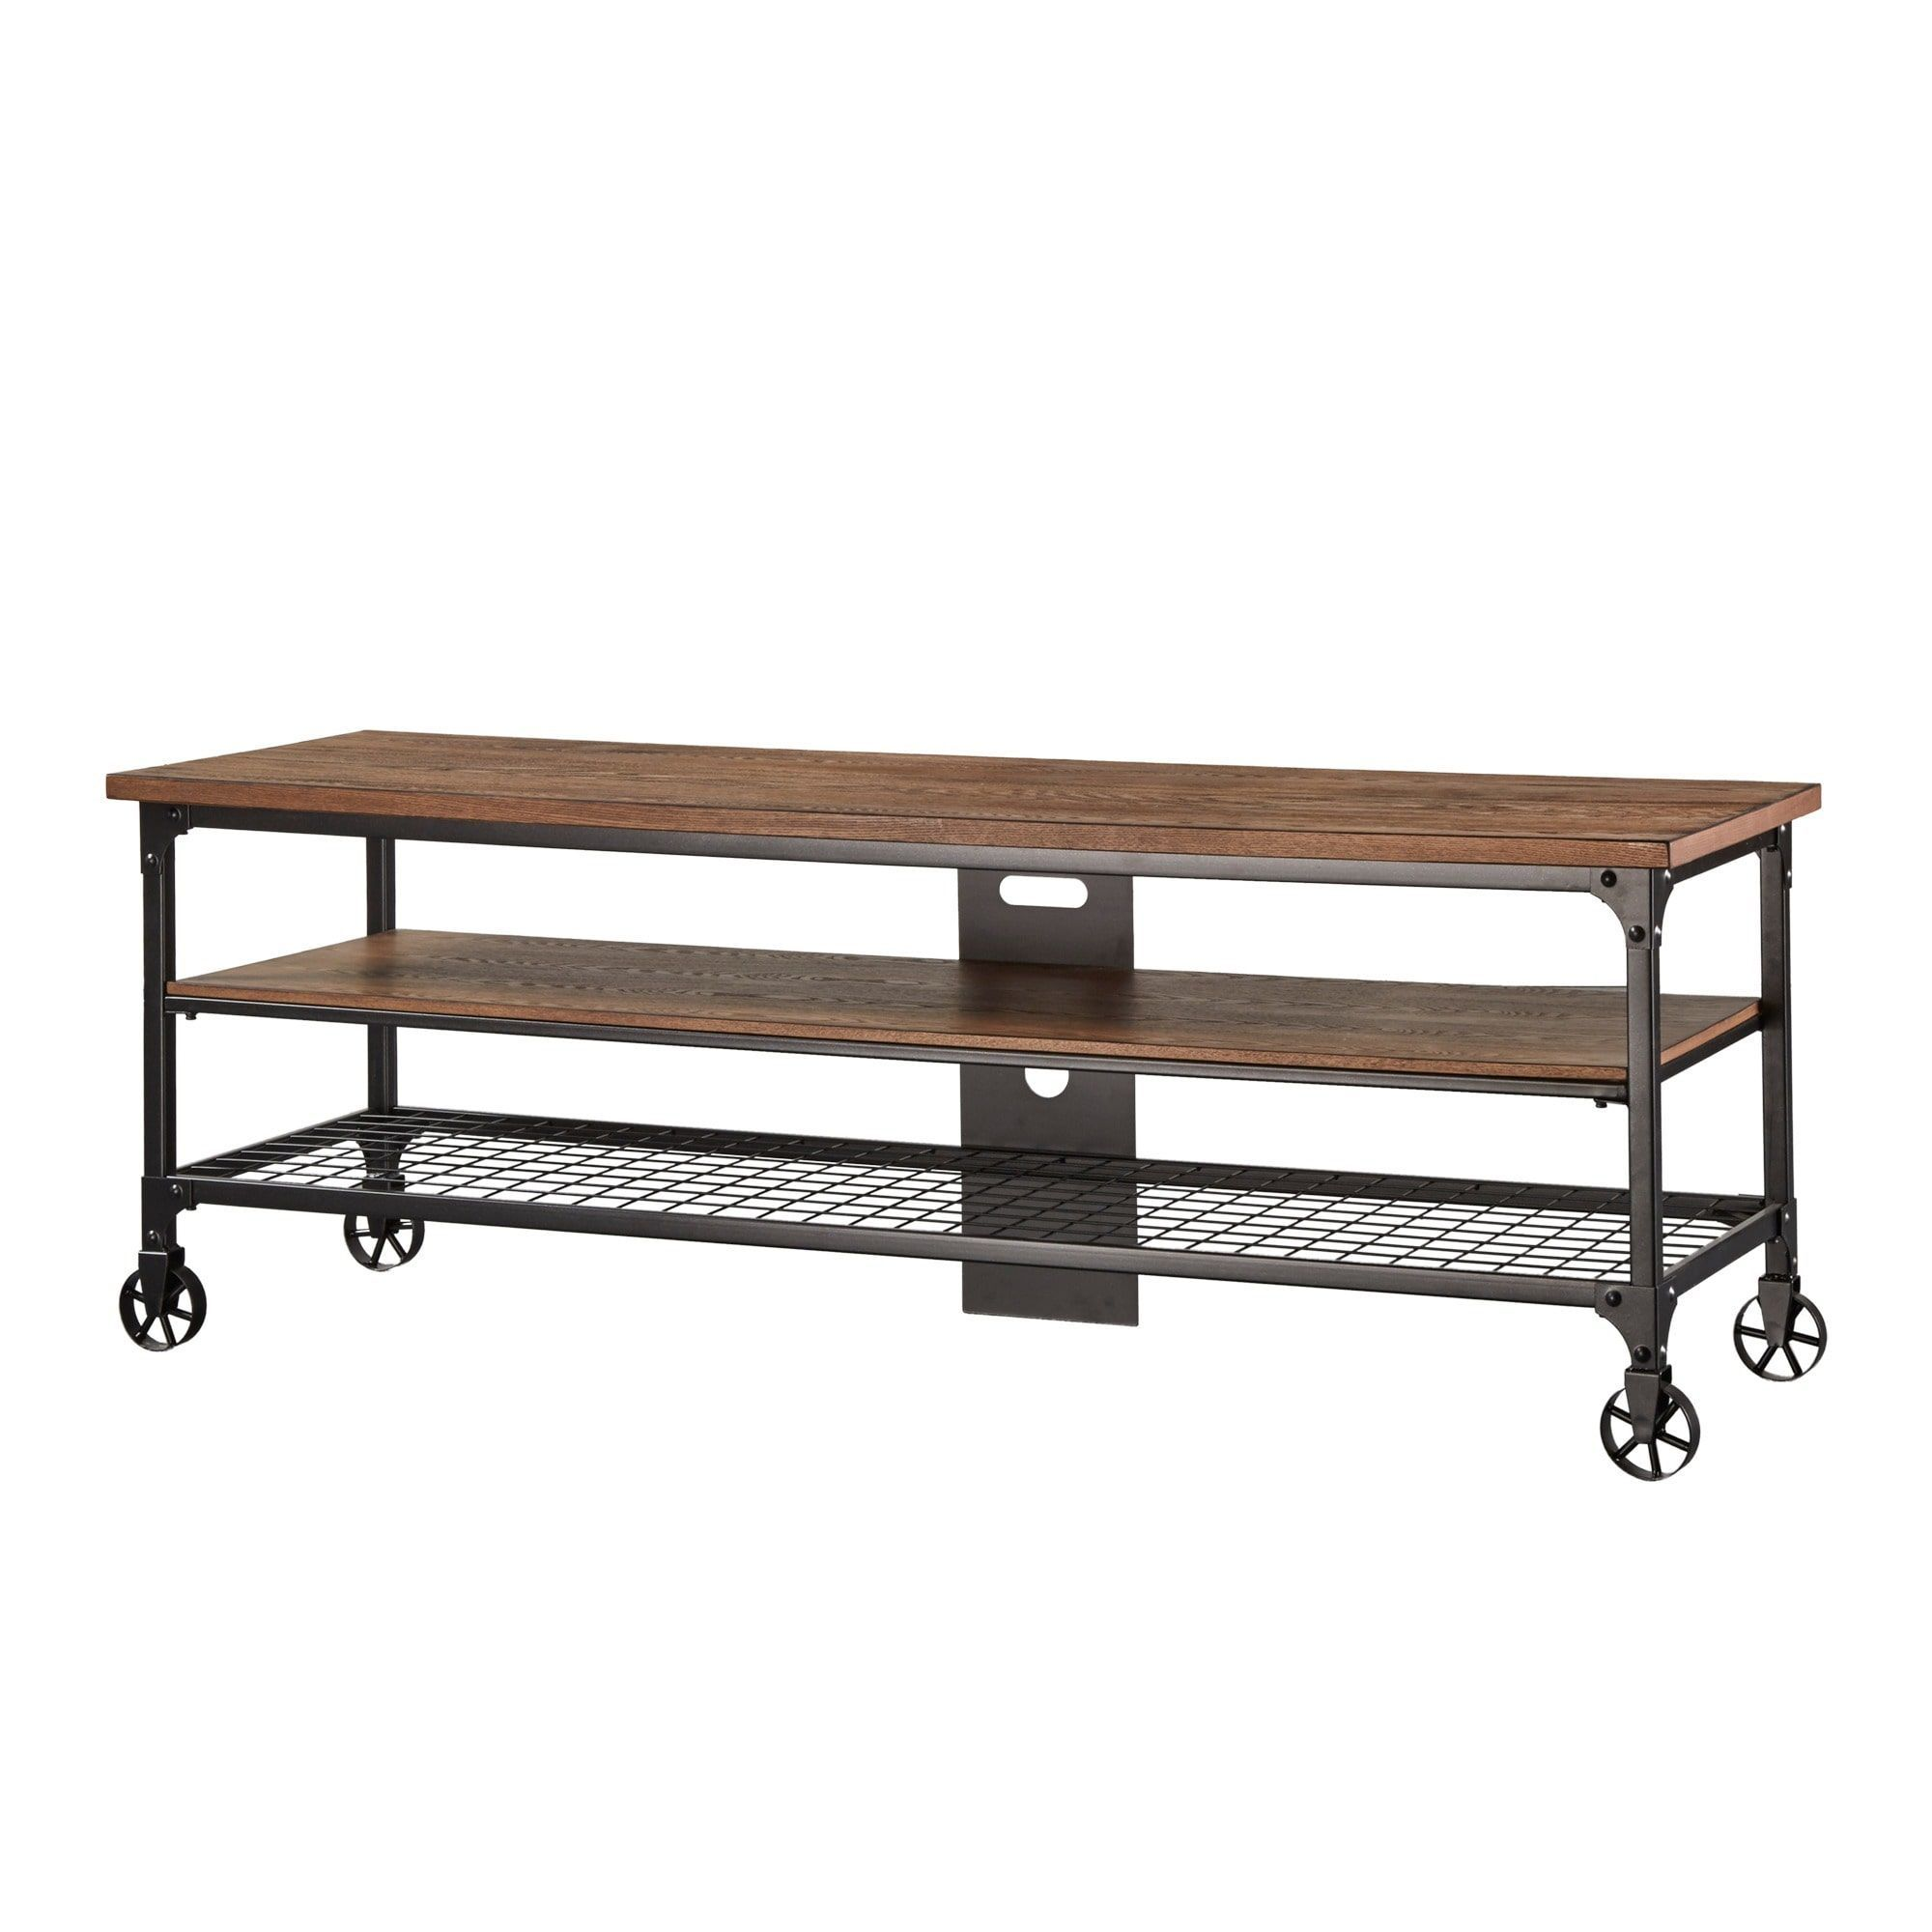 Nelson industrial modern rustic console sofa table tv stand by nelson industrial modern rustic console sofa table tv stand by tribecca home 65 inch geotapseo Choice Image